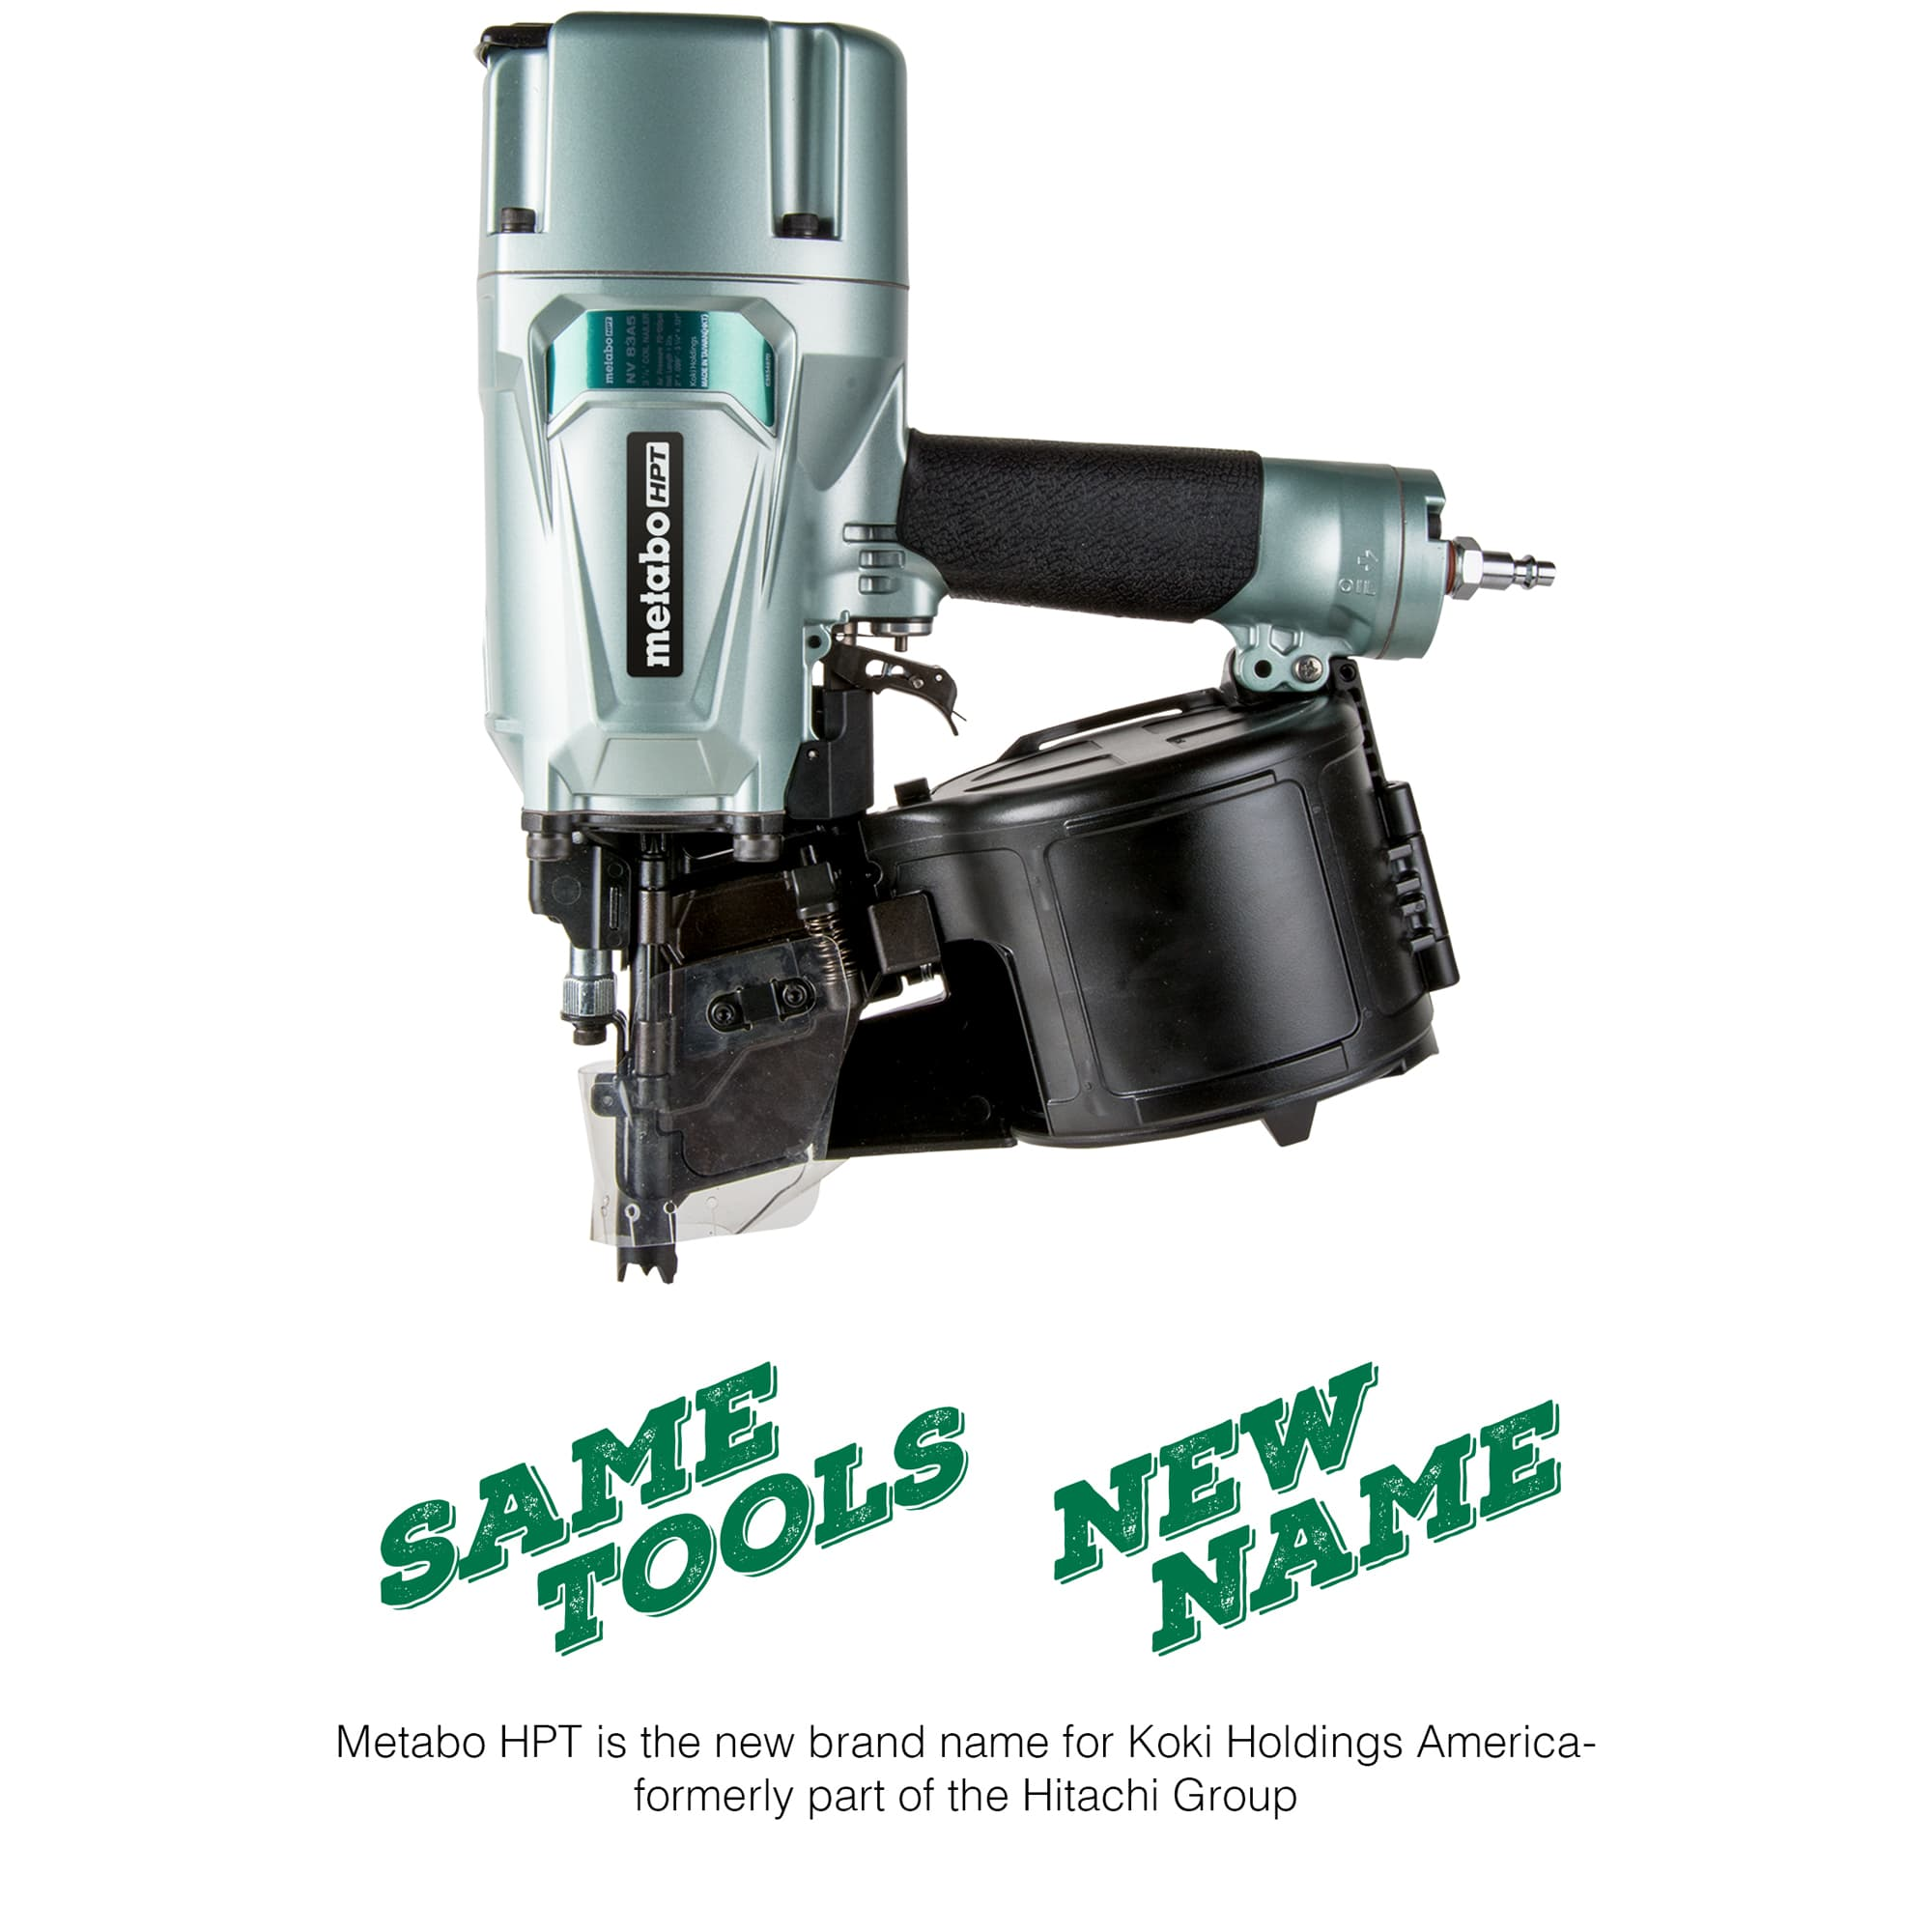 NV83A5 Framing Nailer with Name Change Logo